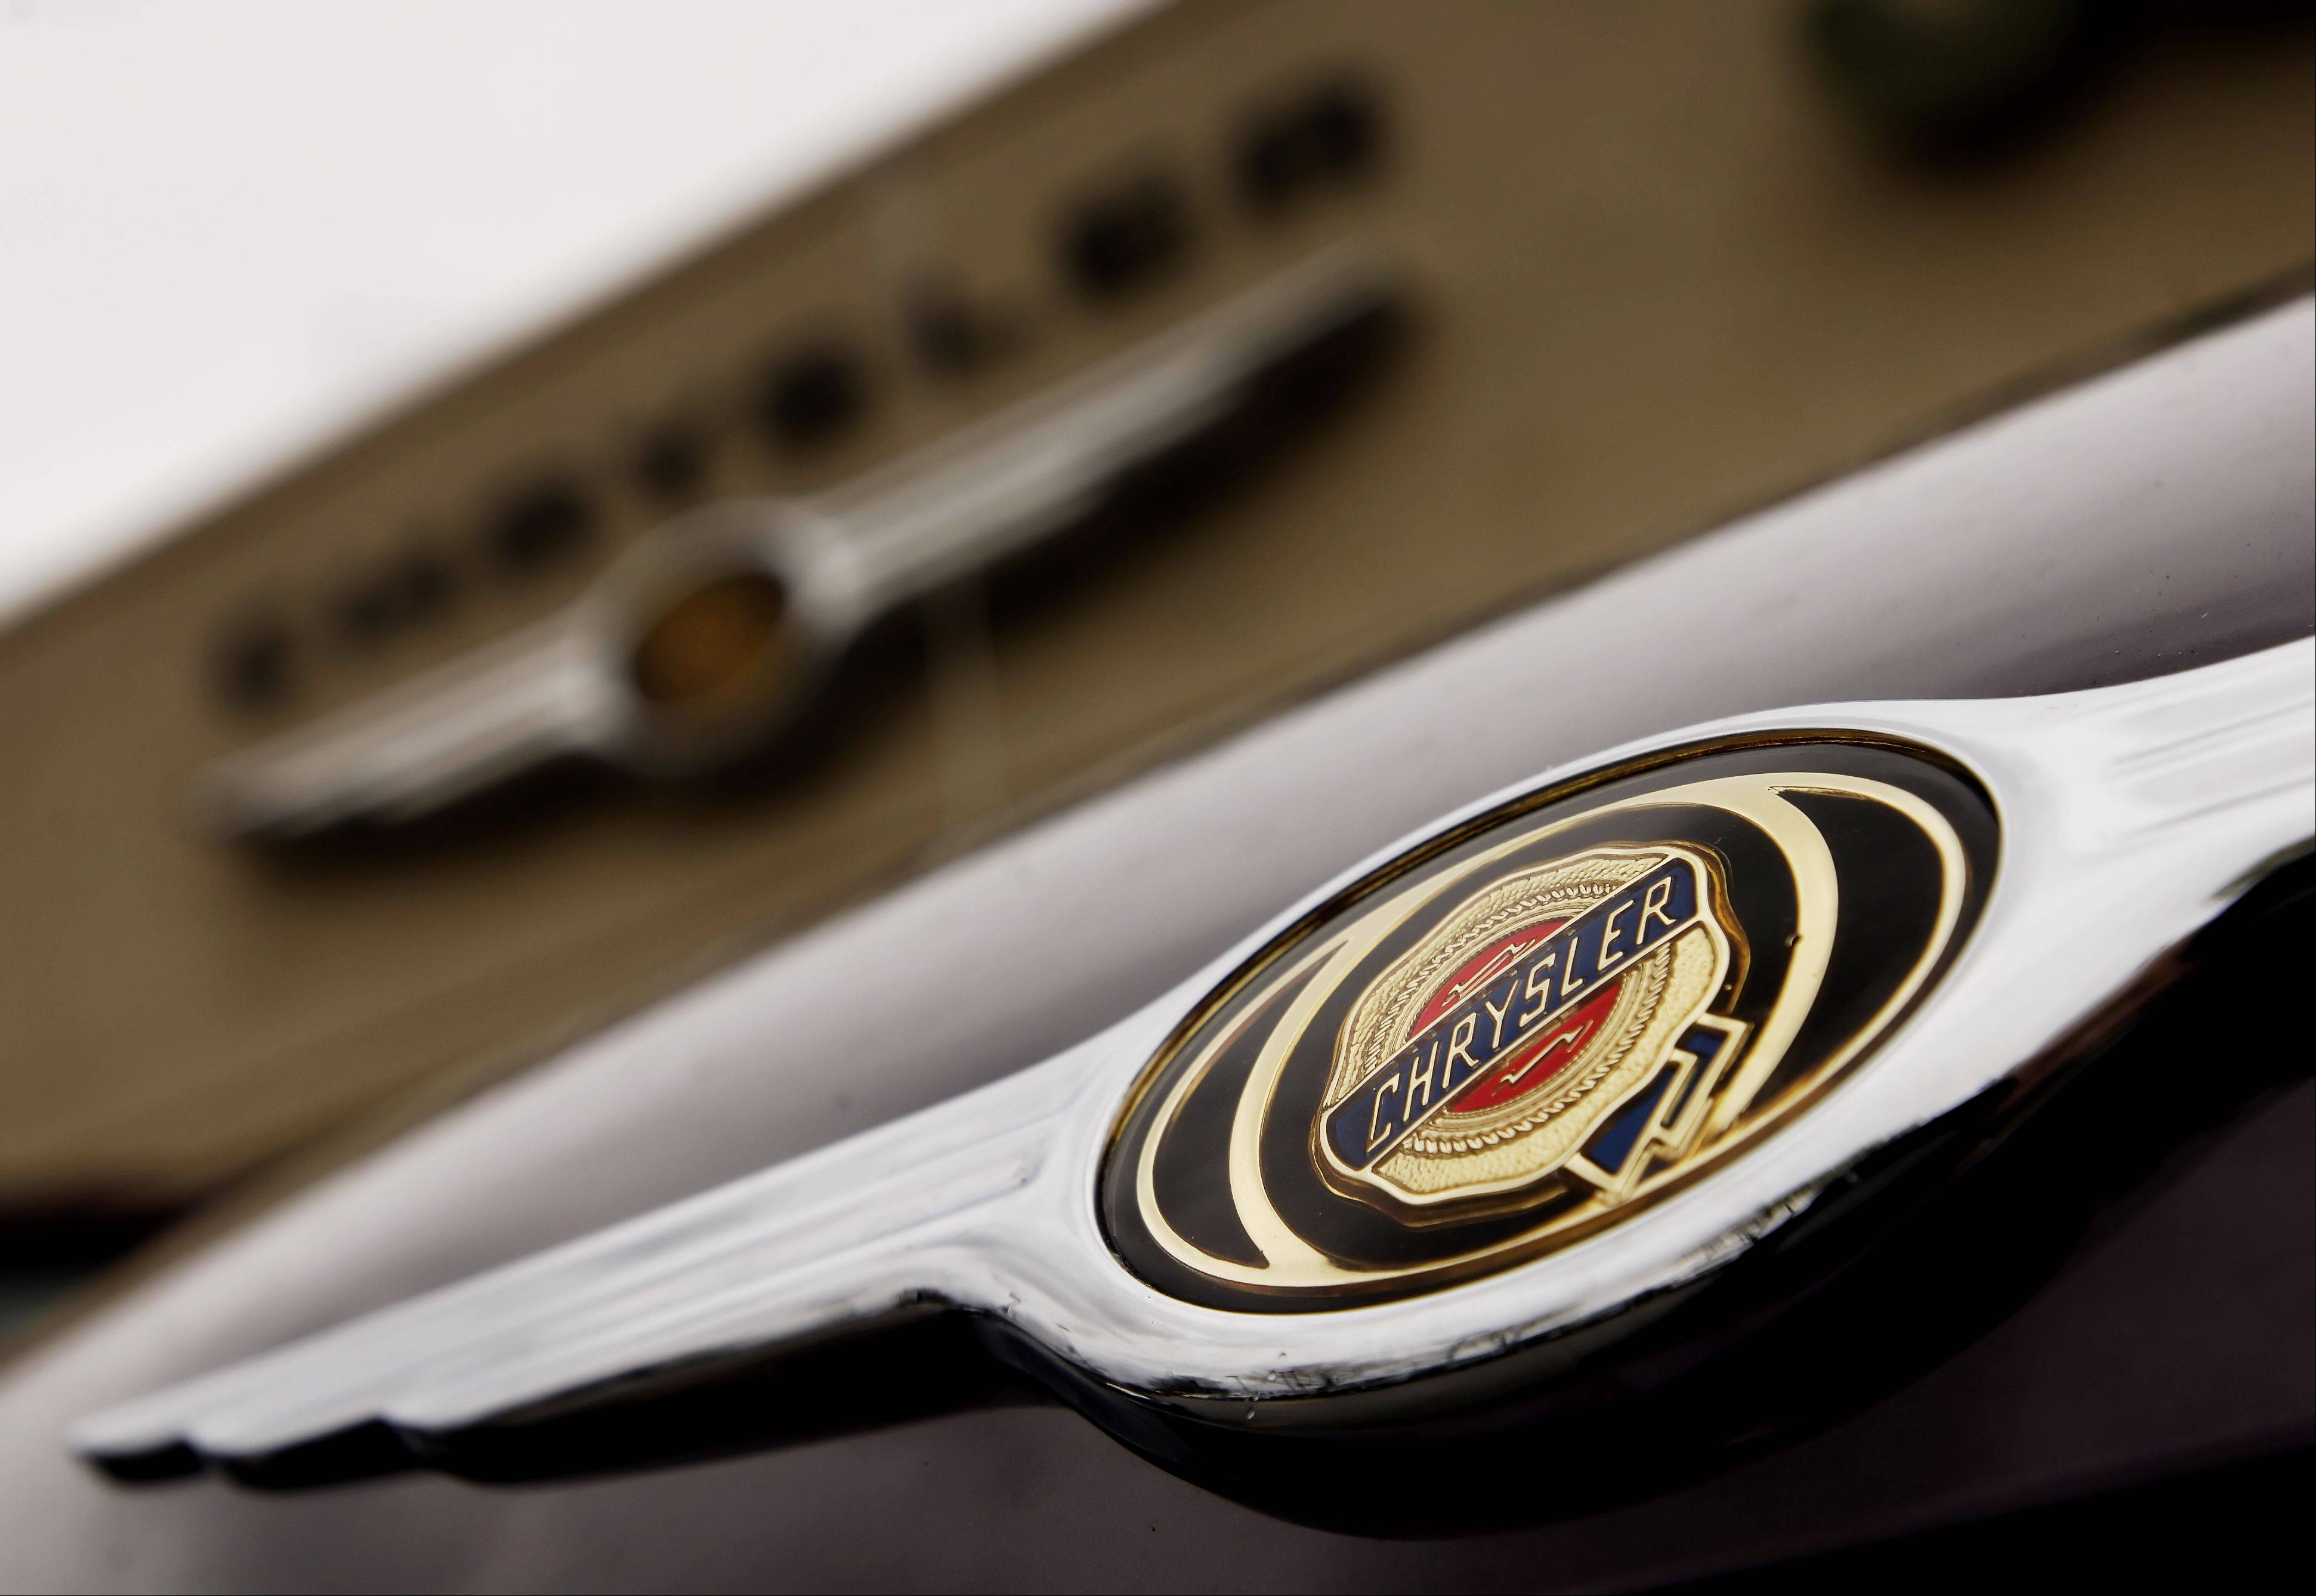 Chrysler Group�s sales picked up in the second quarter thanks to strong U.S. demand for trucks and SUVs, but the company still cut its full-year sales and profit targets after a slower than expected start to the year.